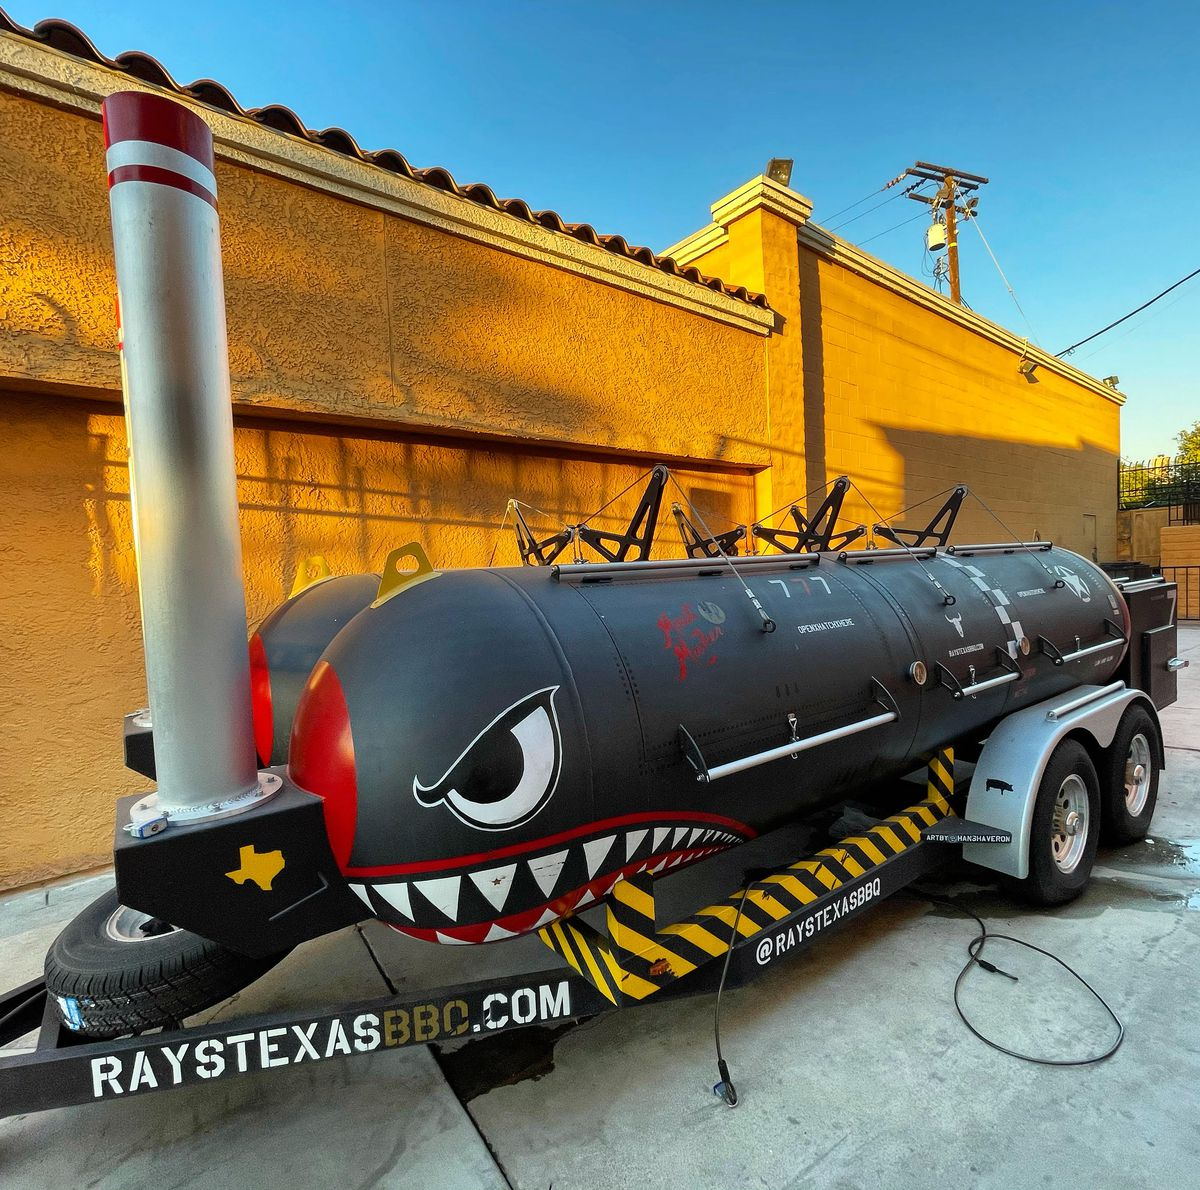 A double barrel smoker painted with angry eyes and sharp teeth in the style of WWII bombers